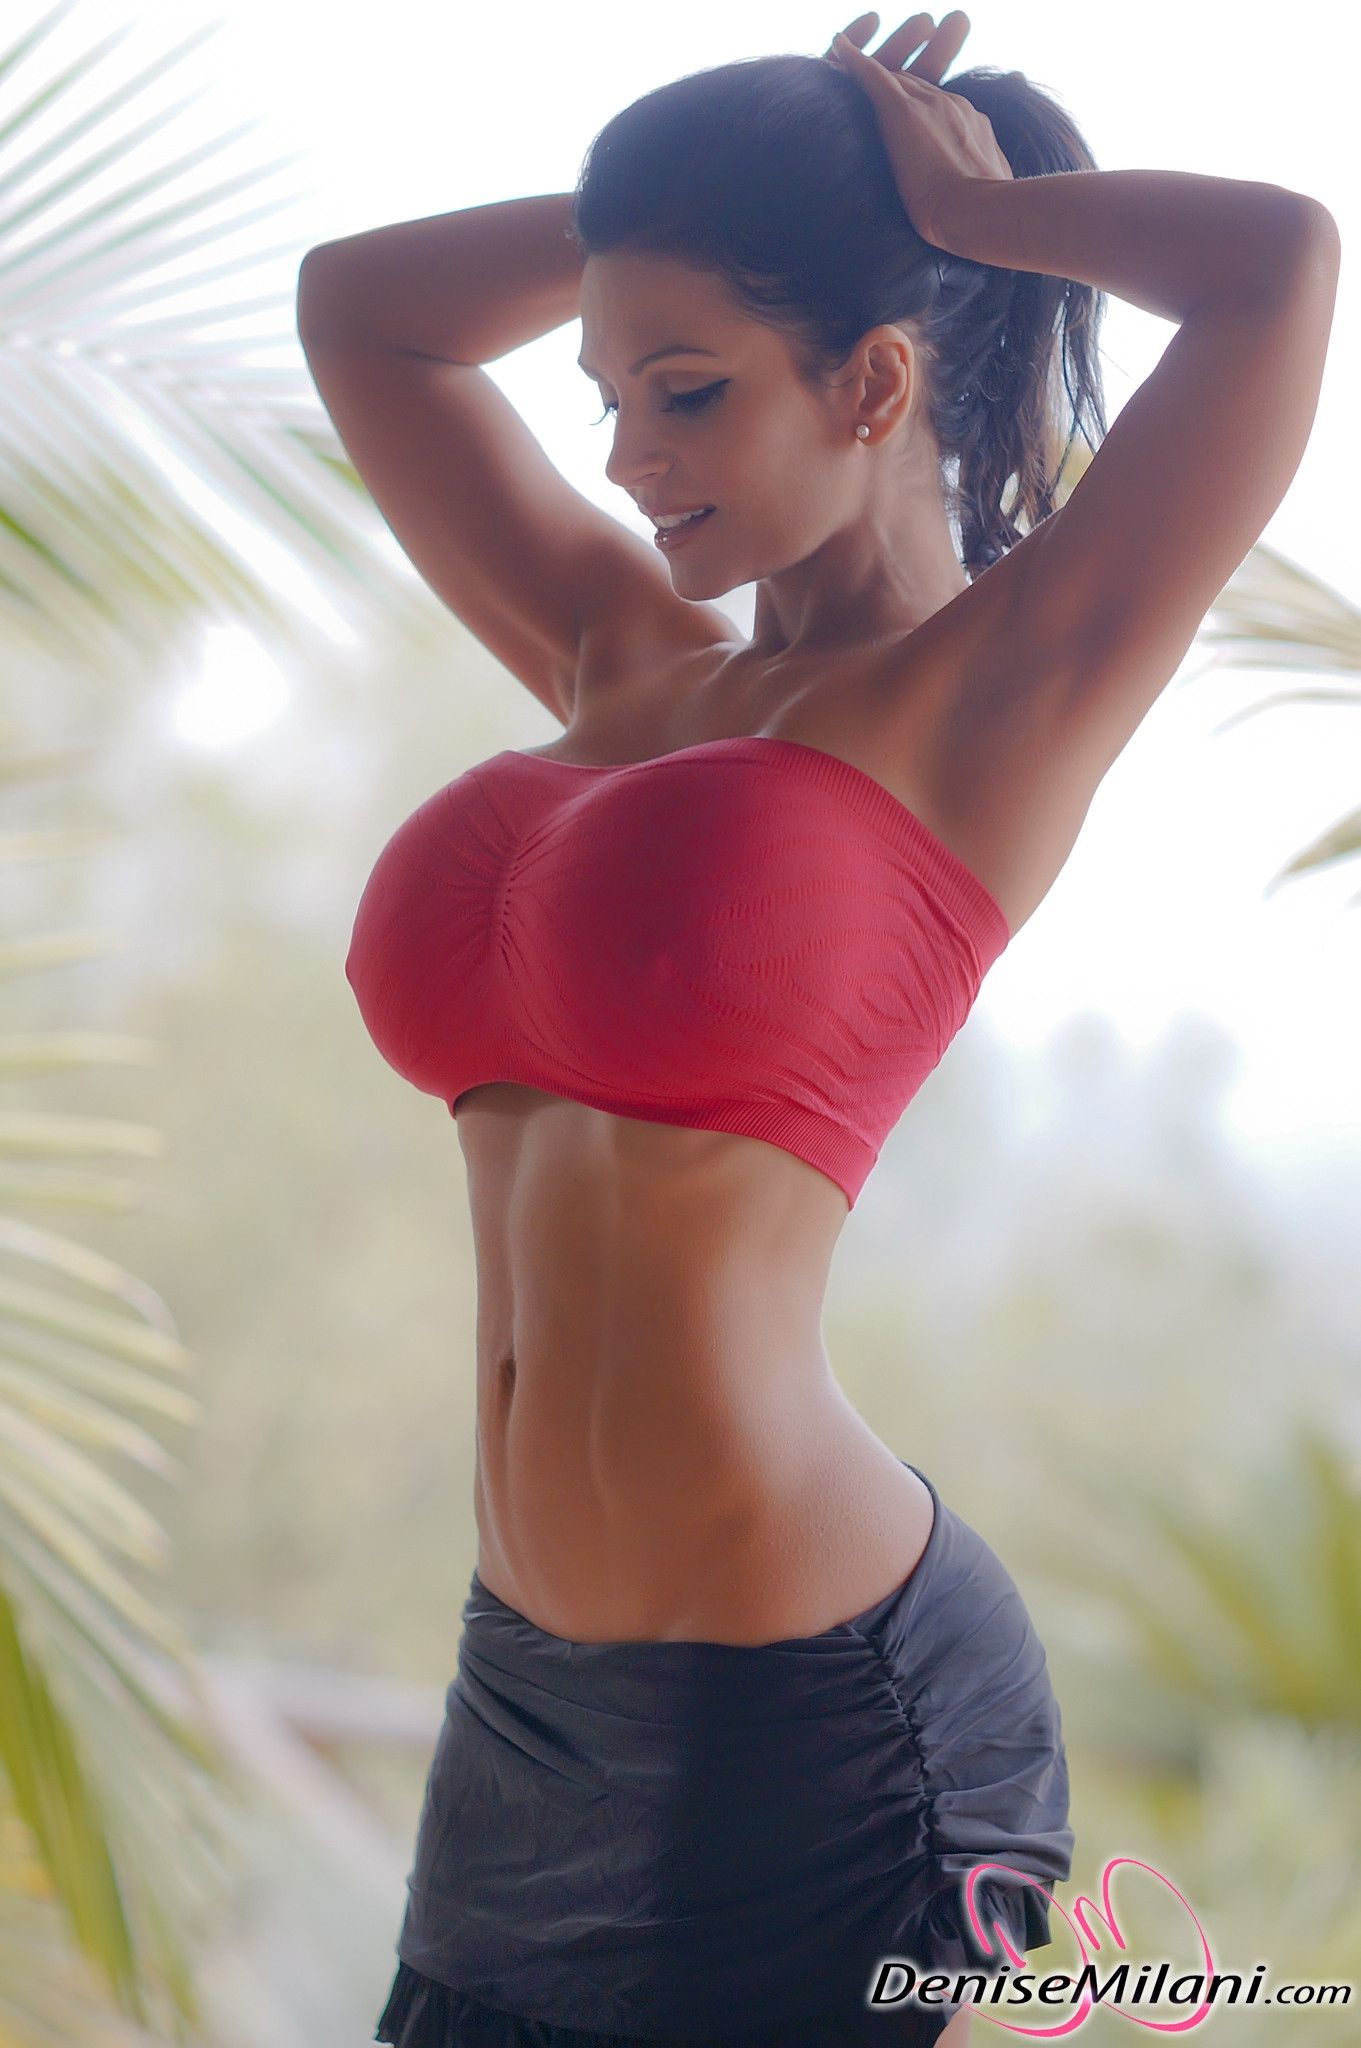 Personal trainer and tight boobs   Hot photos)